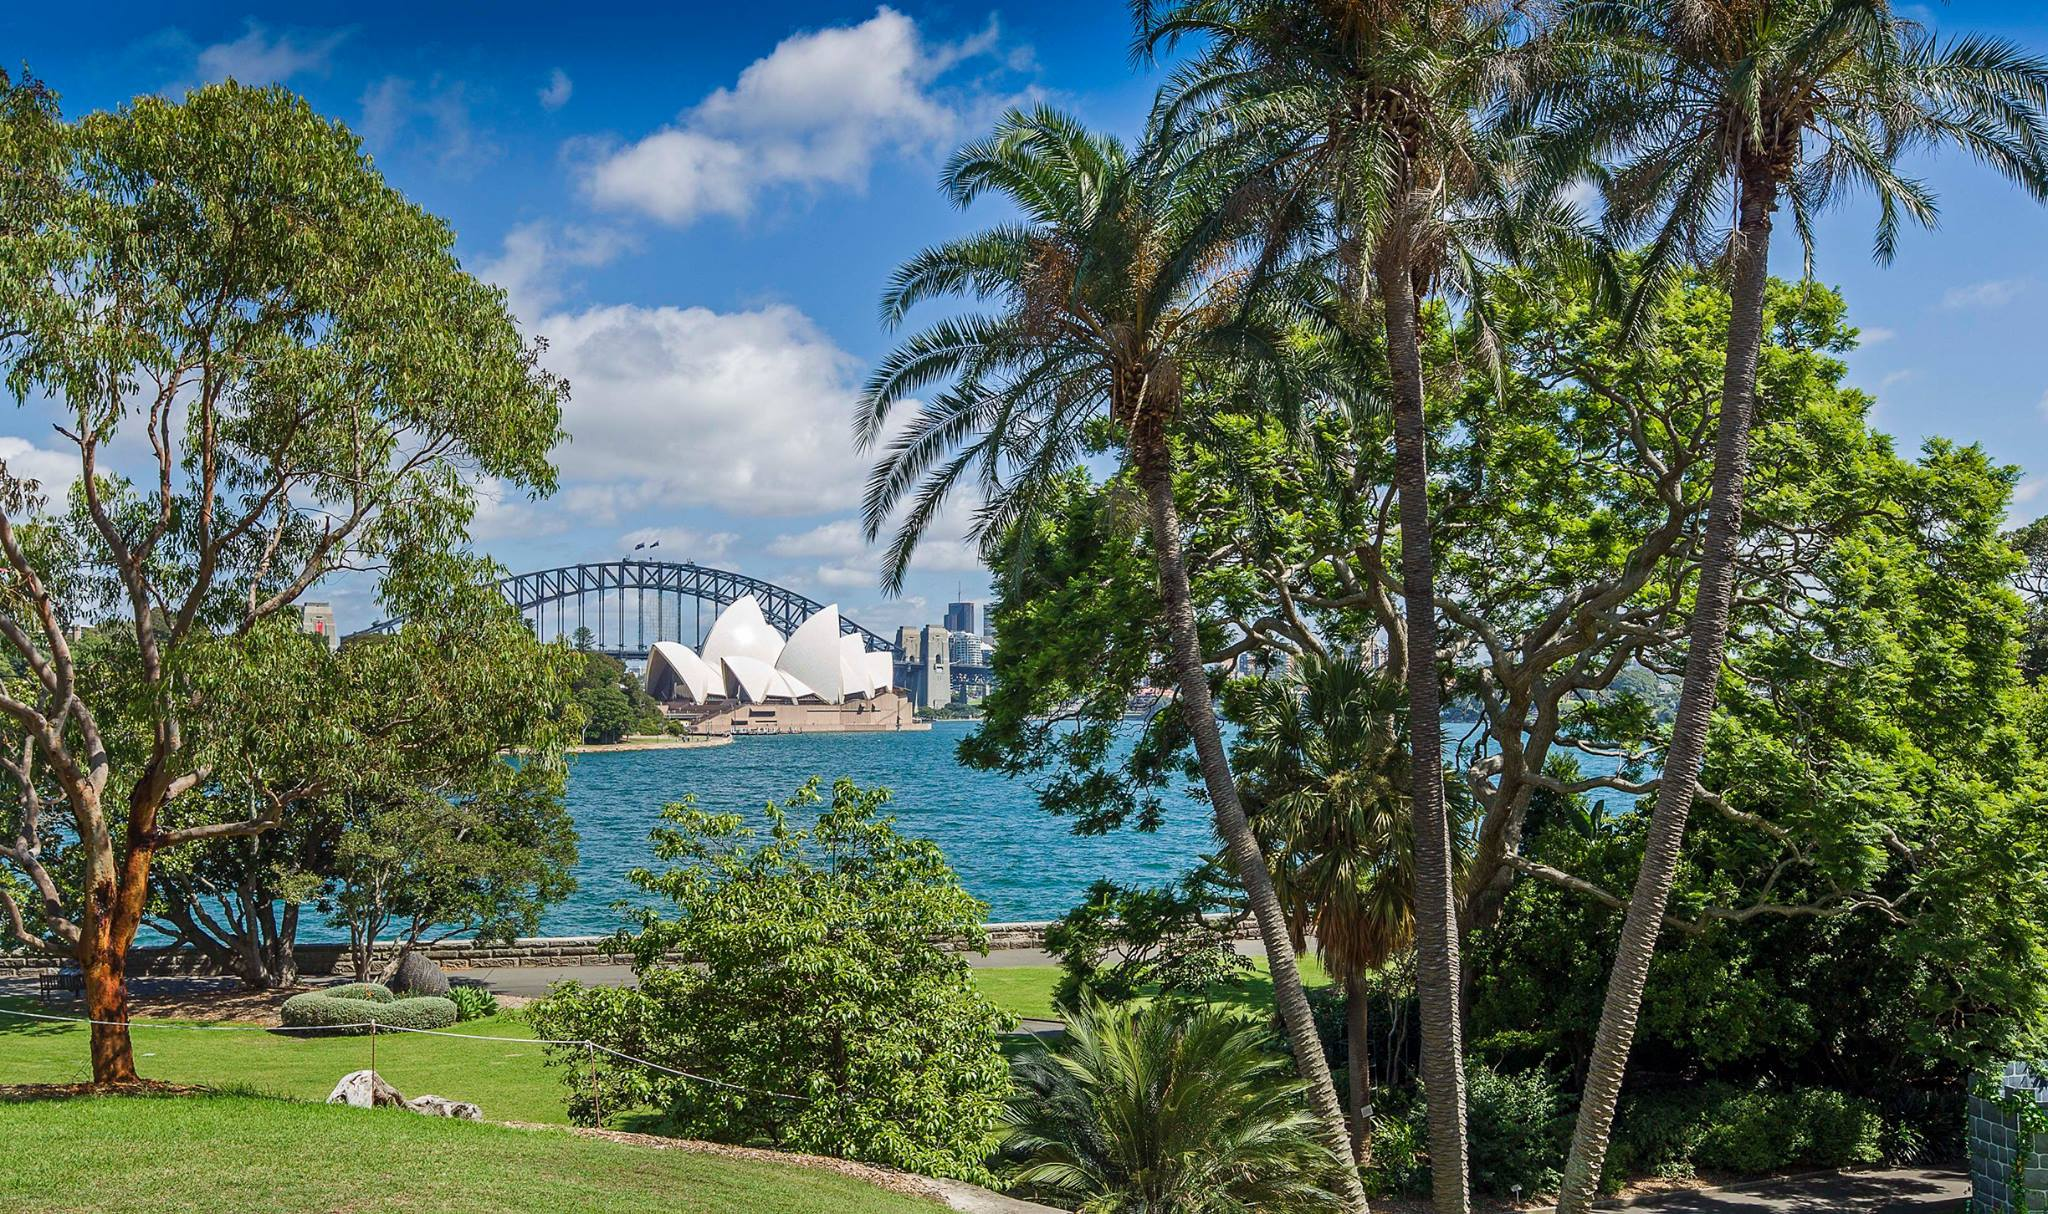 Top things to see do during vivid sydney sydney for Landscape gardeners sydney